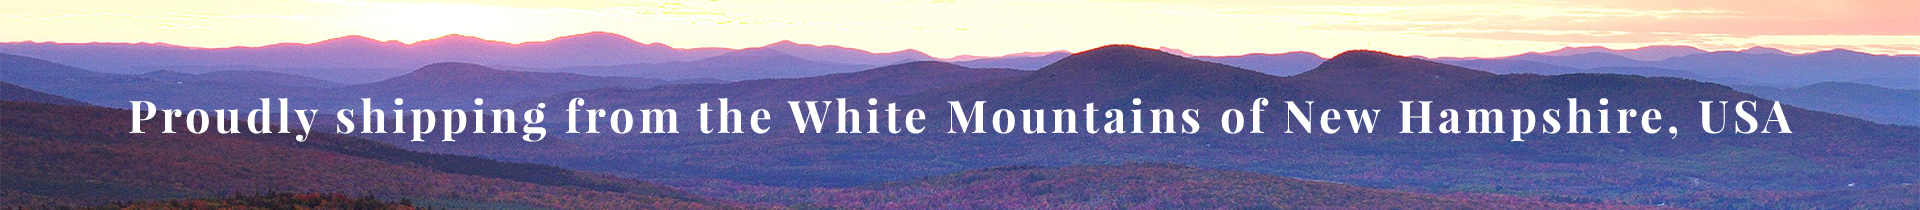 Proudly shipping fro the White Mountains of New Hampshire, USA